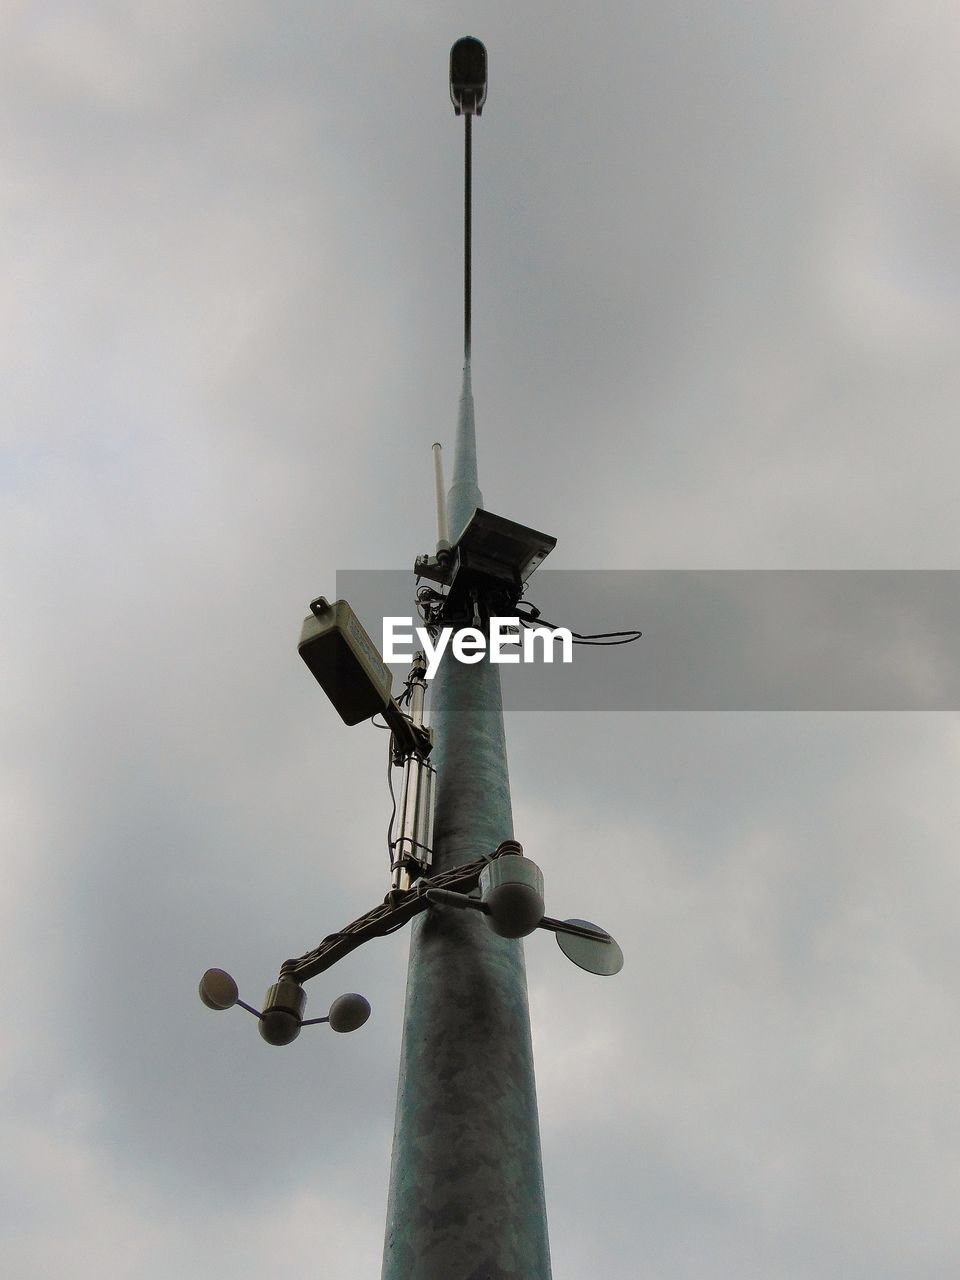 sky, low angle view, cloud - sky, no people, technology, lighting equipment, day, nature, pole, street, street light, outdoors, security camera, protection, vertebrate, security, bird, surveillance, communication, animals in the wild, light